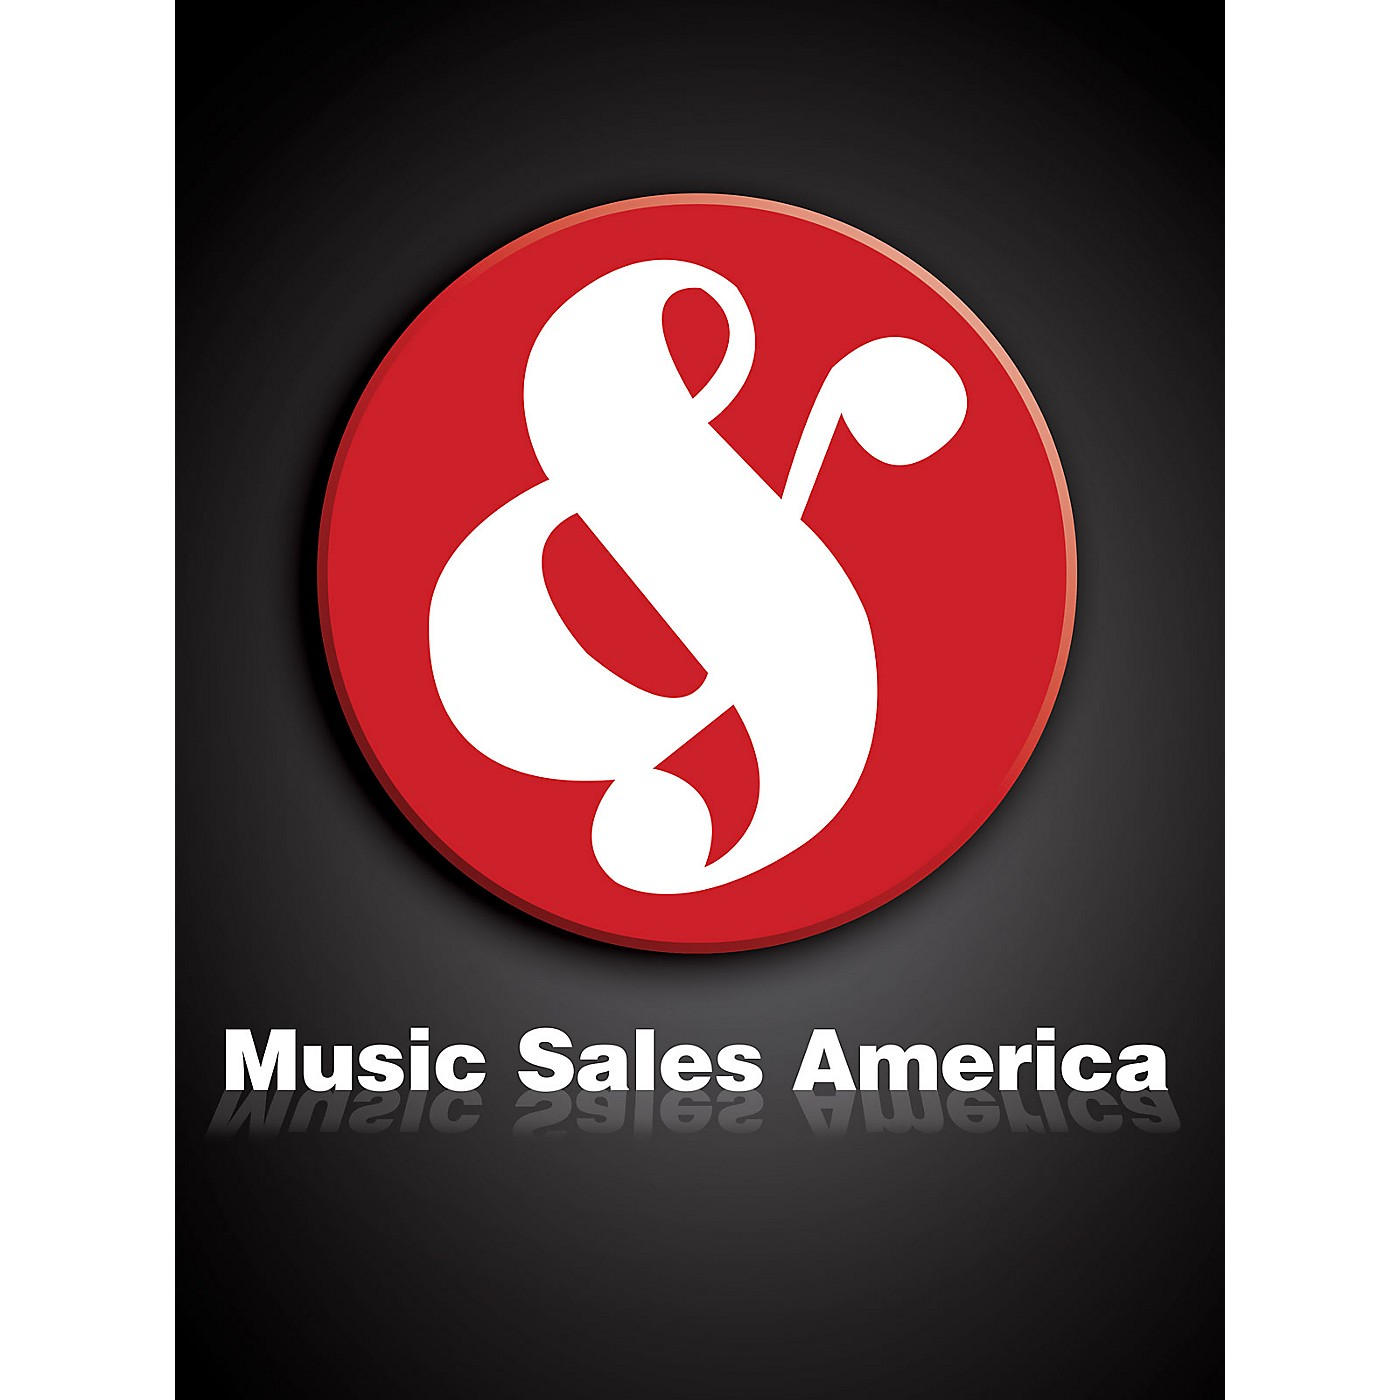 Hal Leonard Oboe Quartet (Score) Music Sales America Series Softcover Composed by Elizabeth Maconchy thumbnail